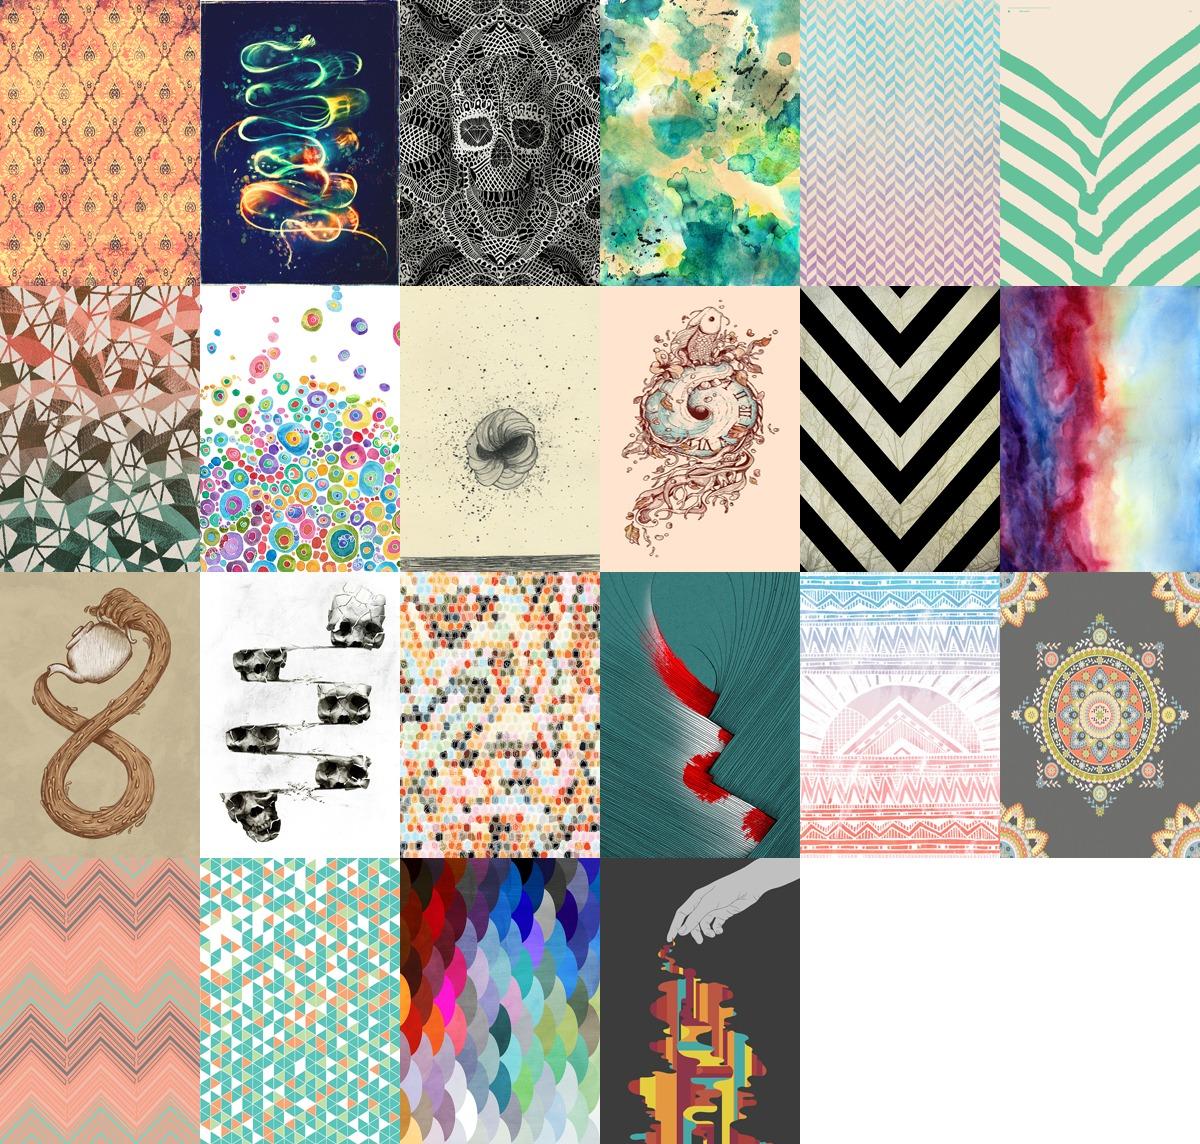 my sims 3 blog: new rugs by simcerely